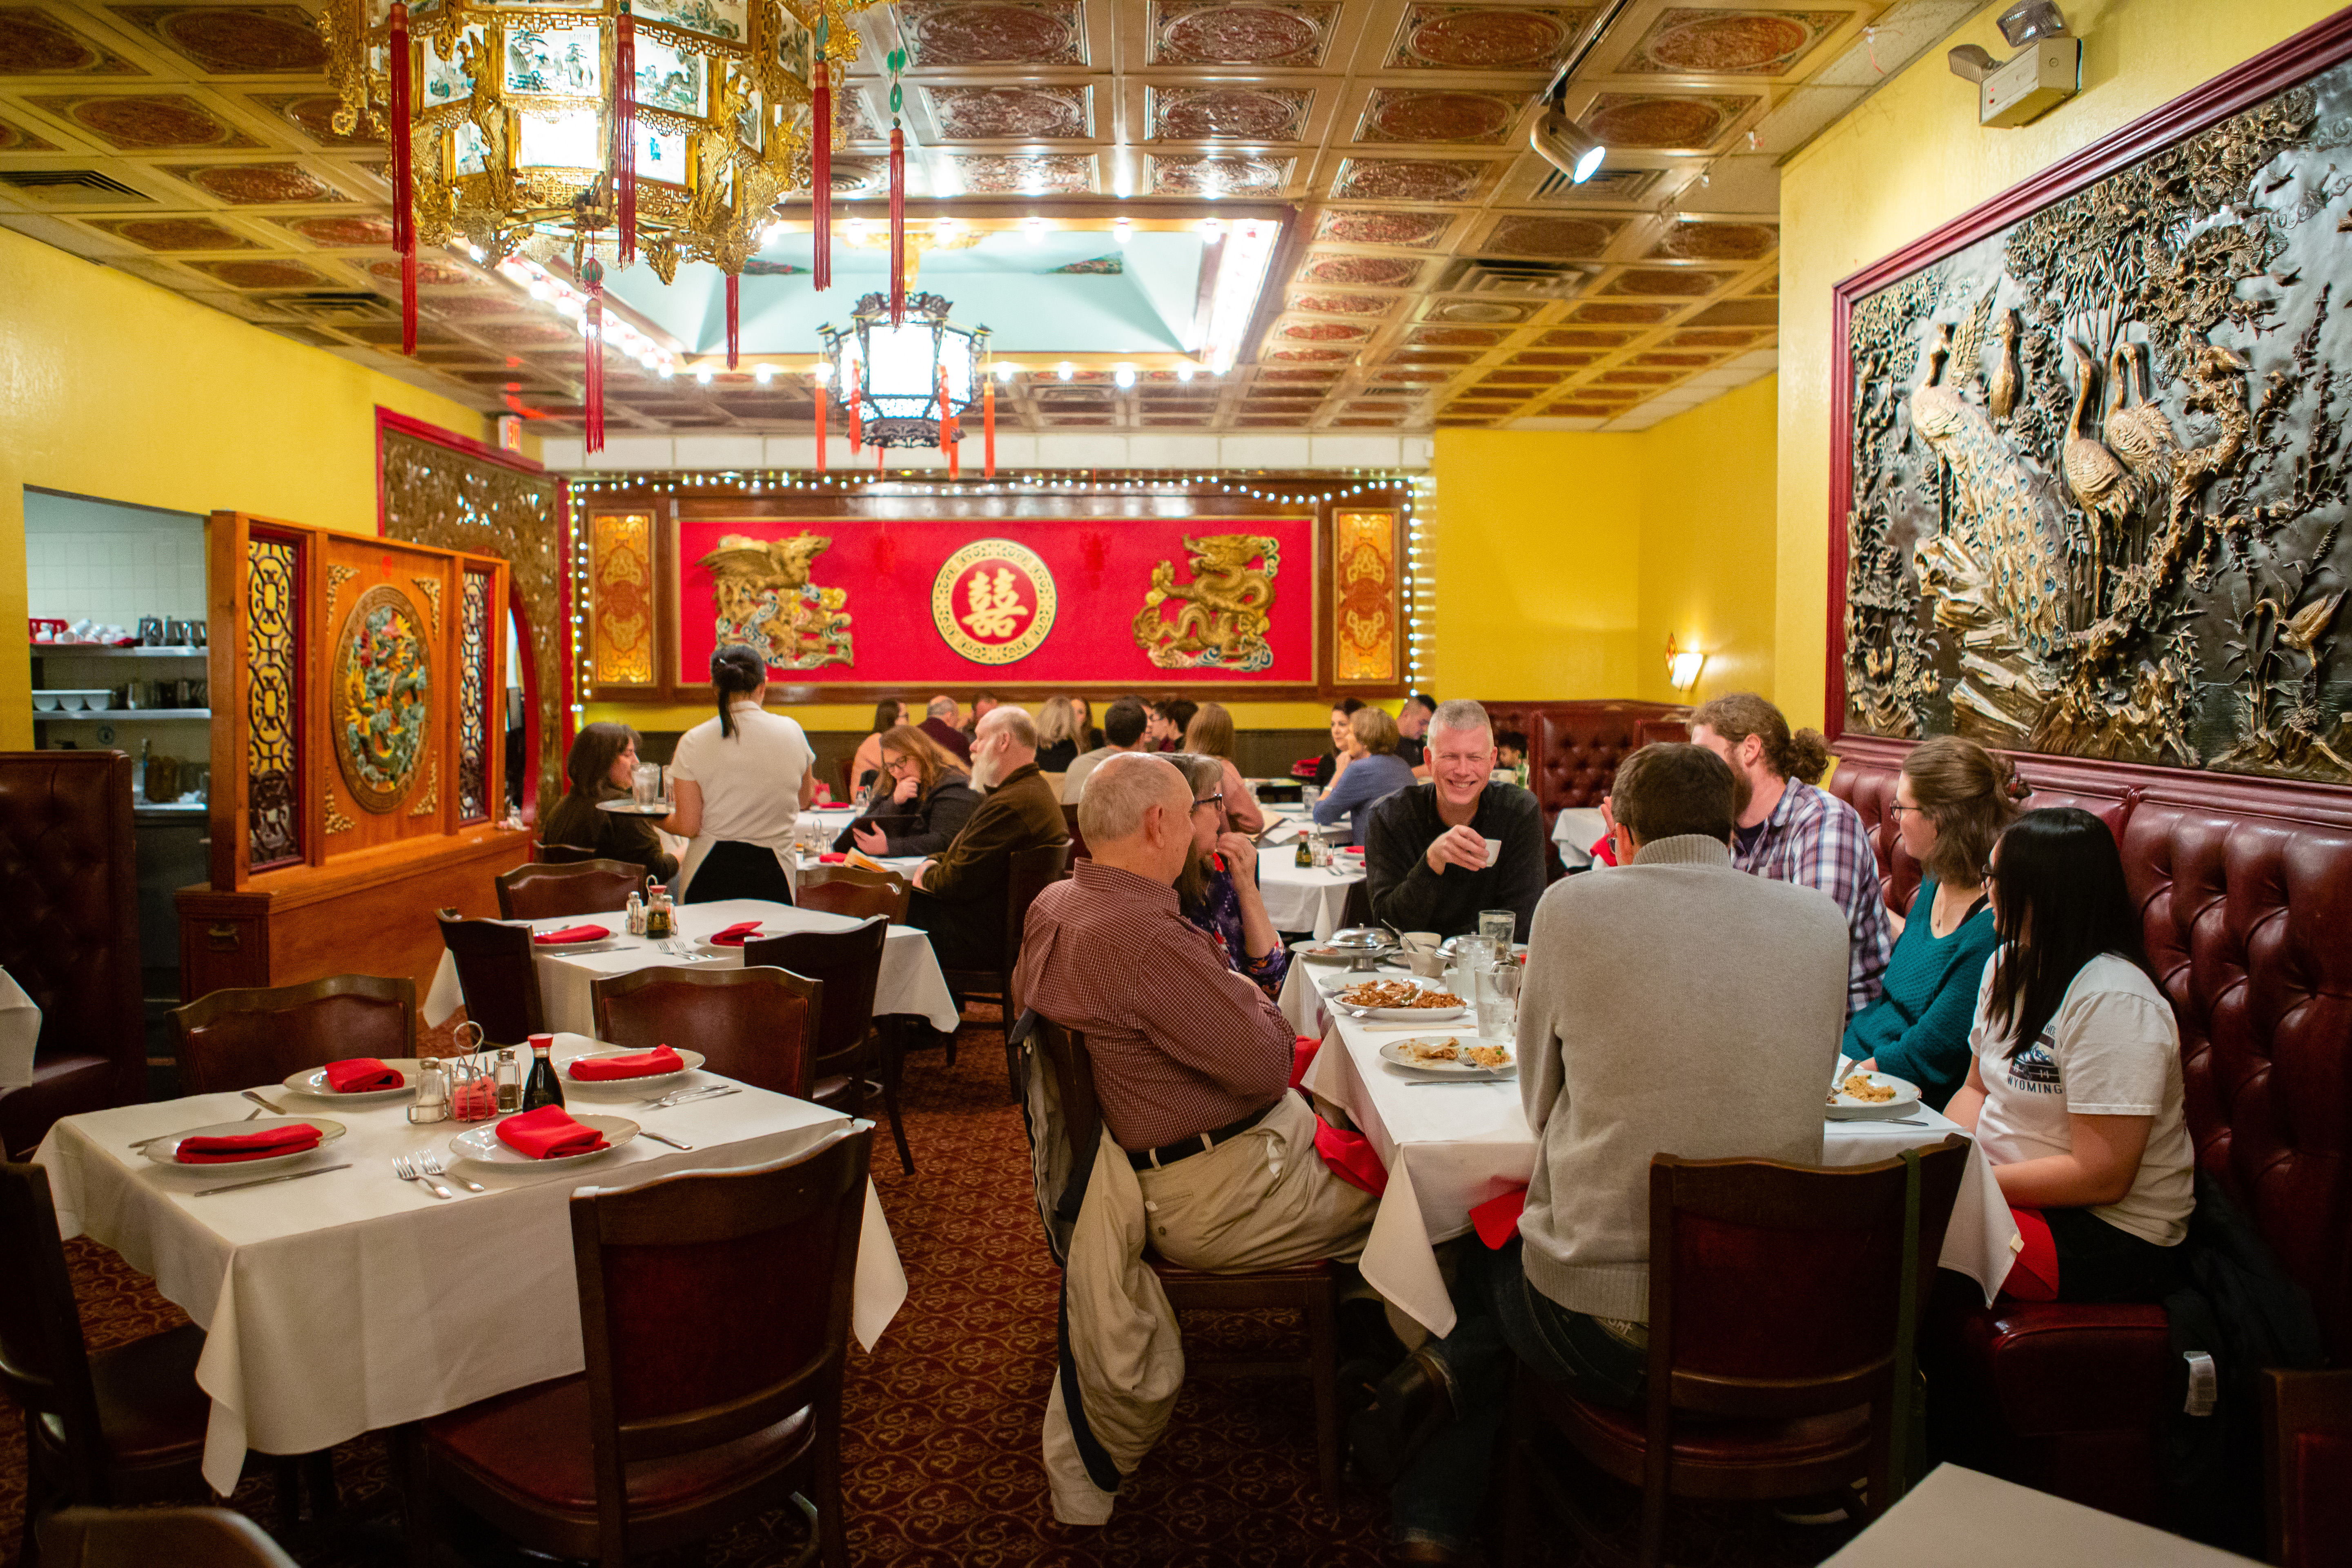 People seated at large tables in a Chinese restaurant.